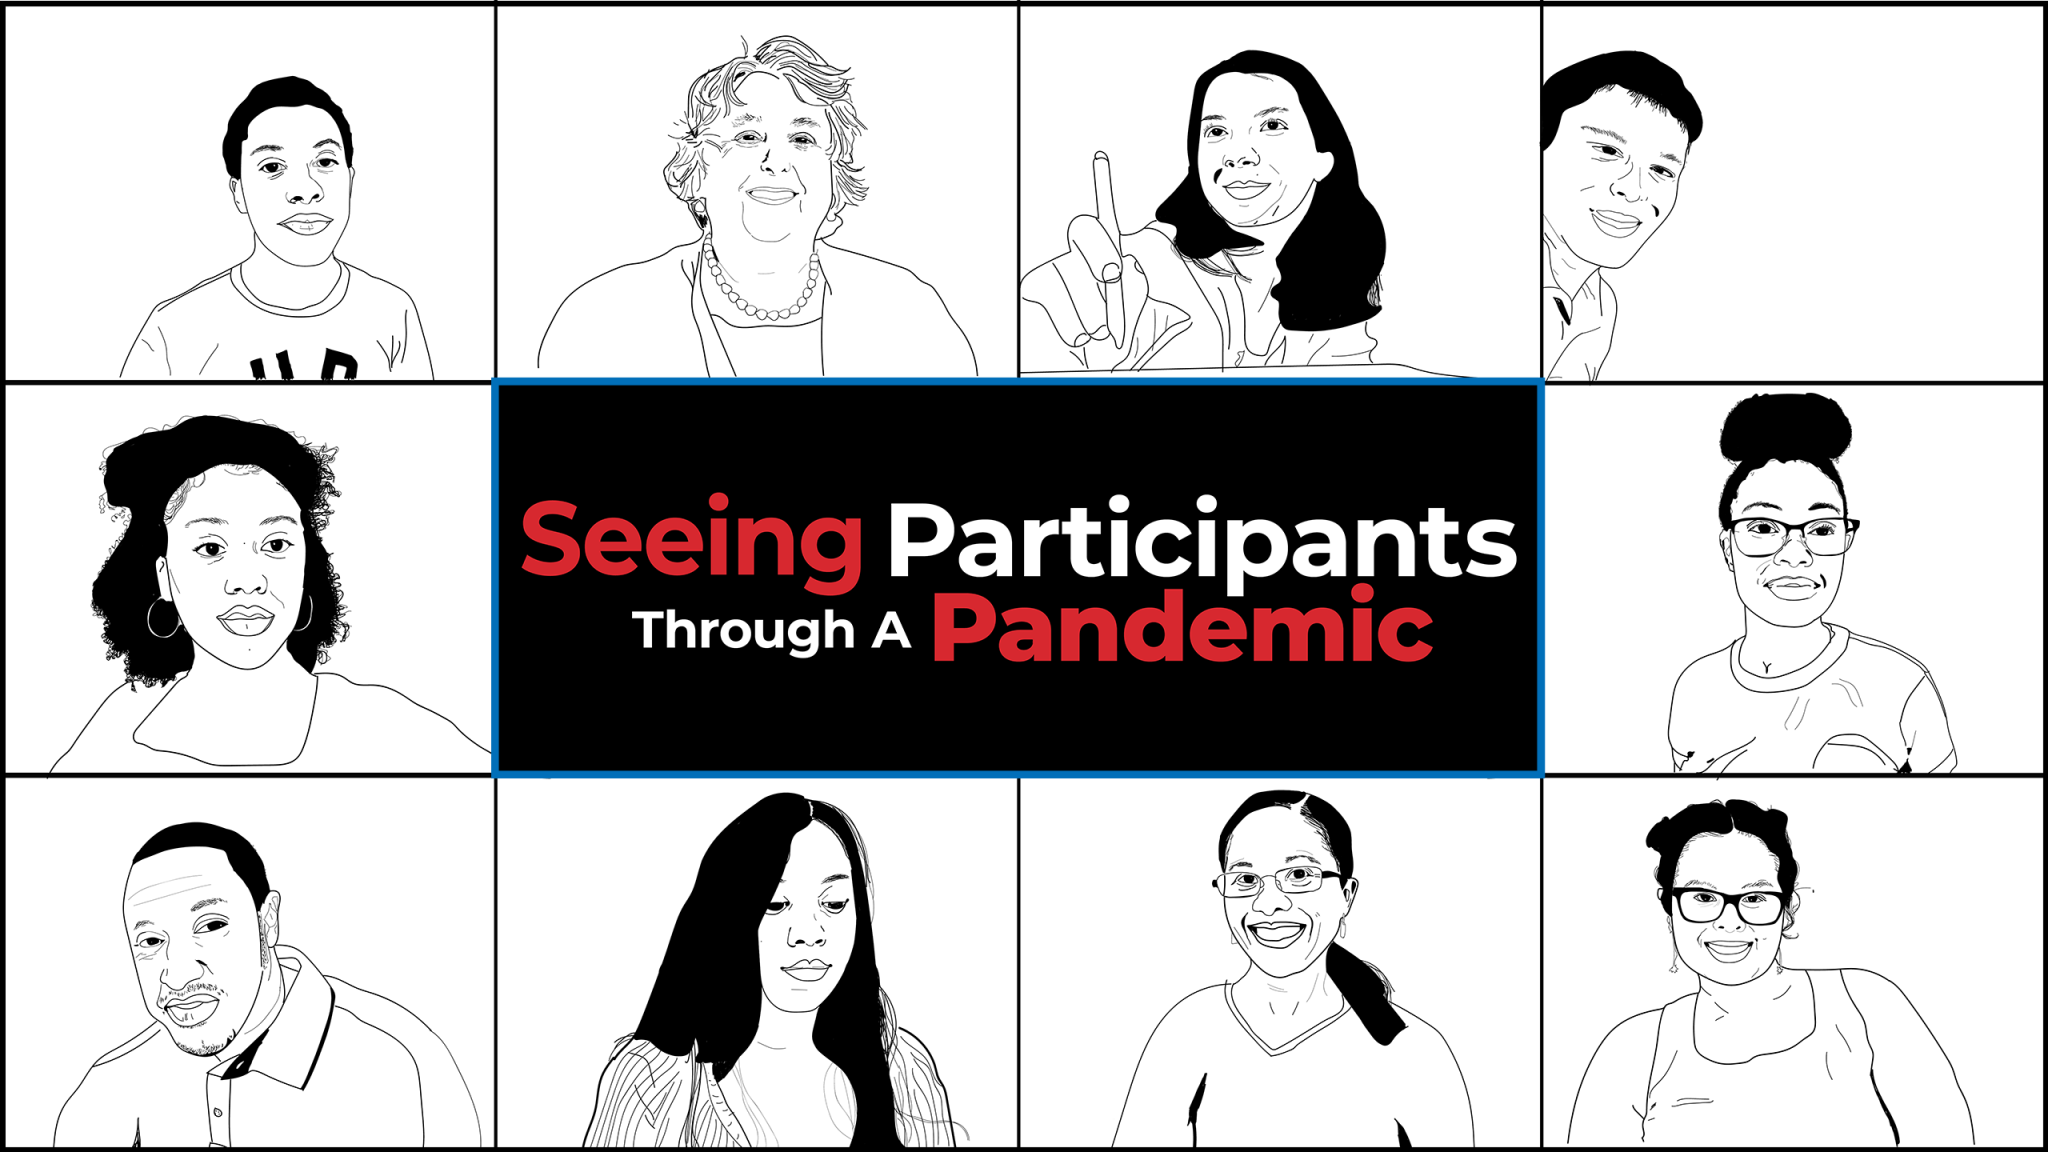 Graphic description: 10 hand-sketched characters in small squares are arranged to look like a Zoom video call. Text in the center reads, Seeing Participants Through A Pandemic